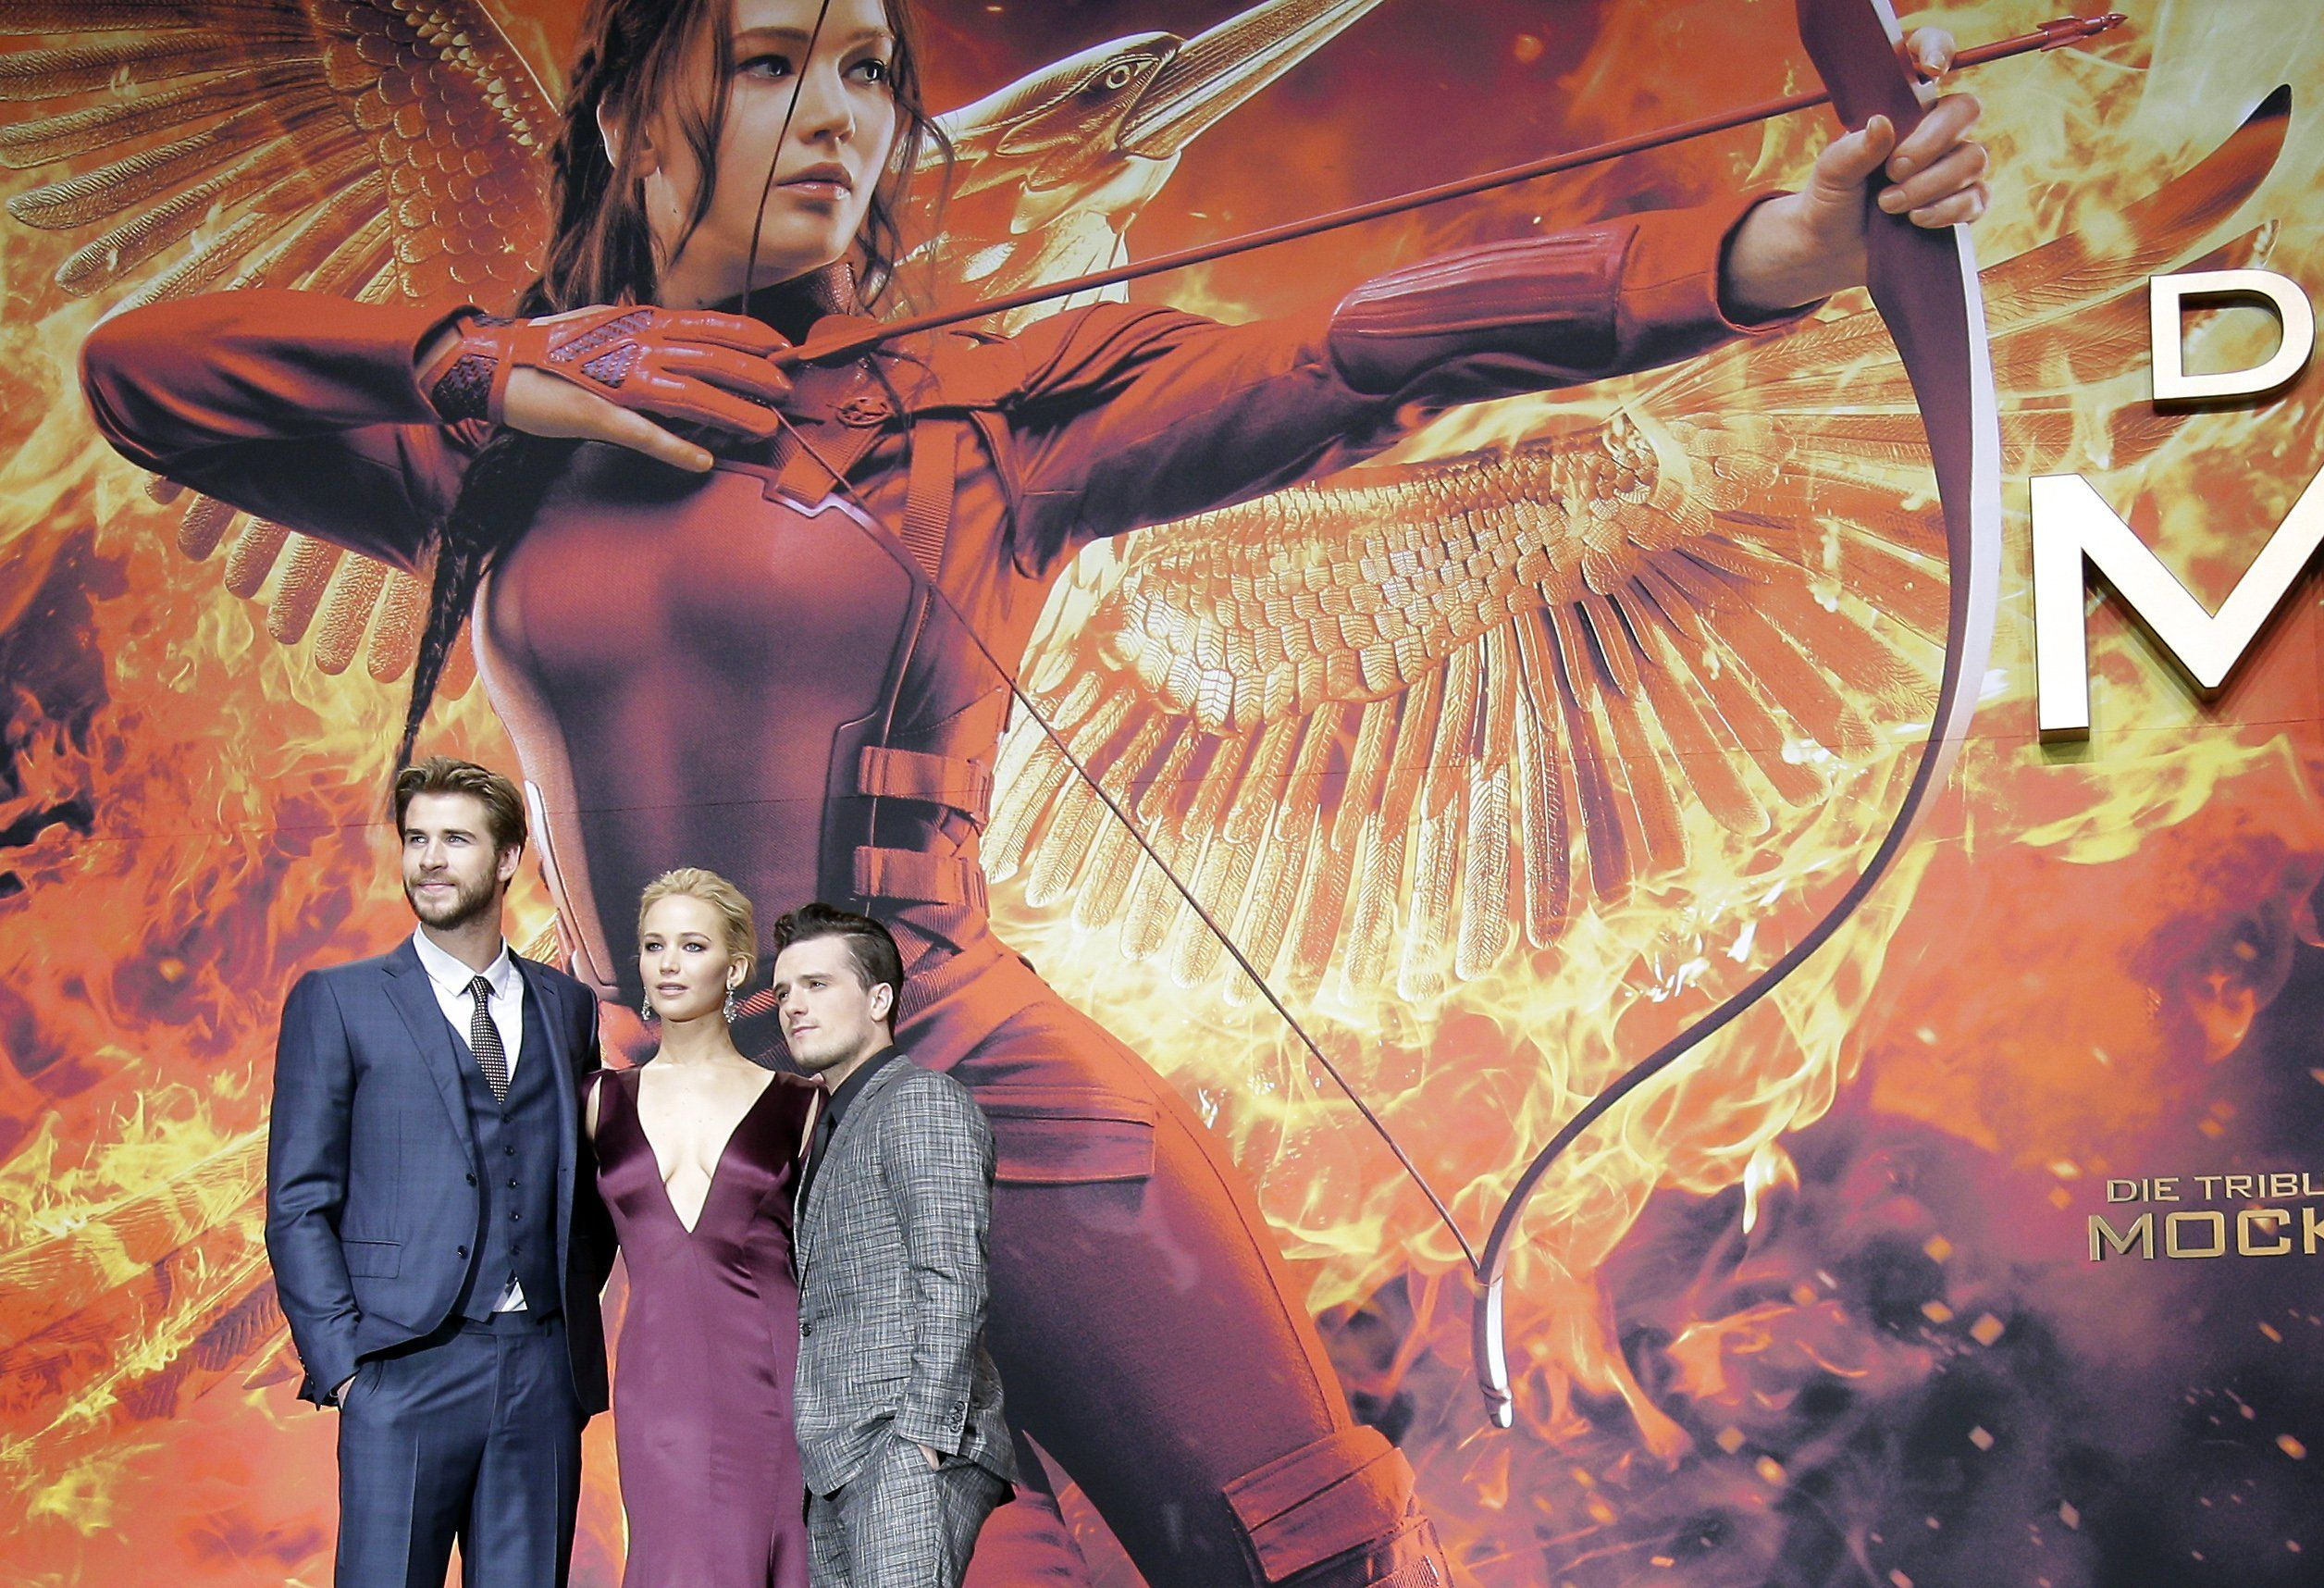 CORRECTION Germany Premiere The Hunger Games Mockingjay Part 2